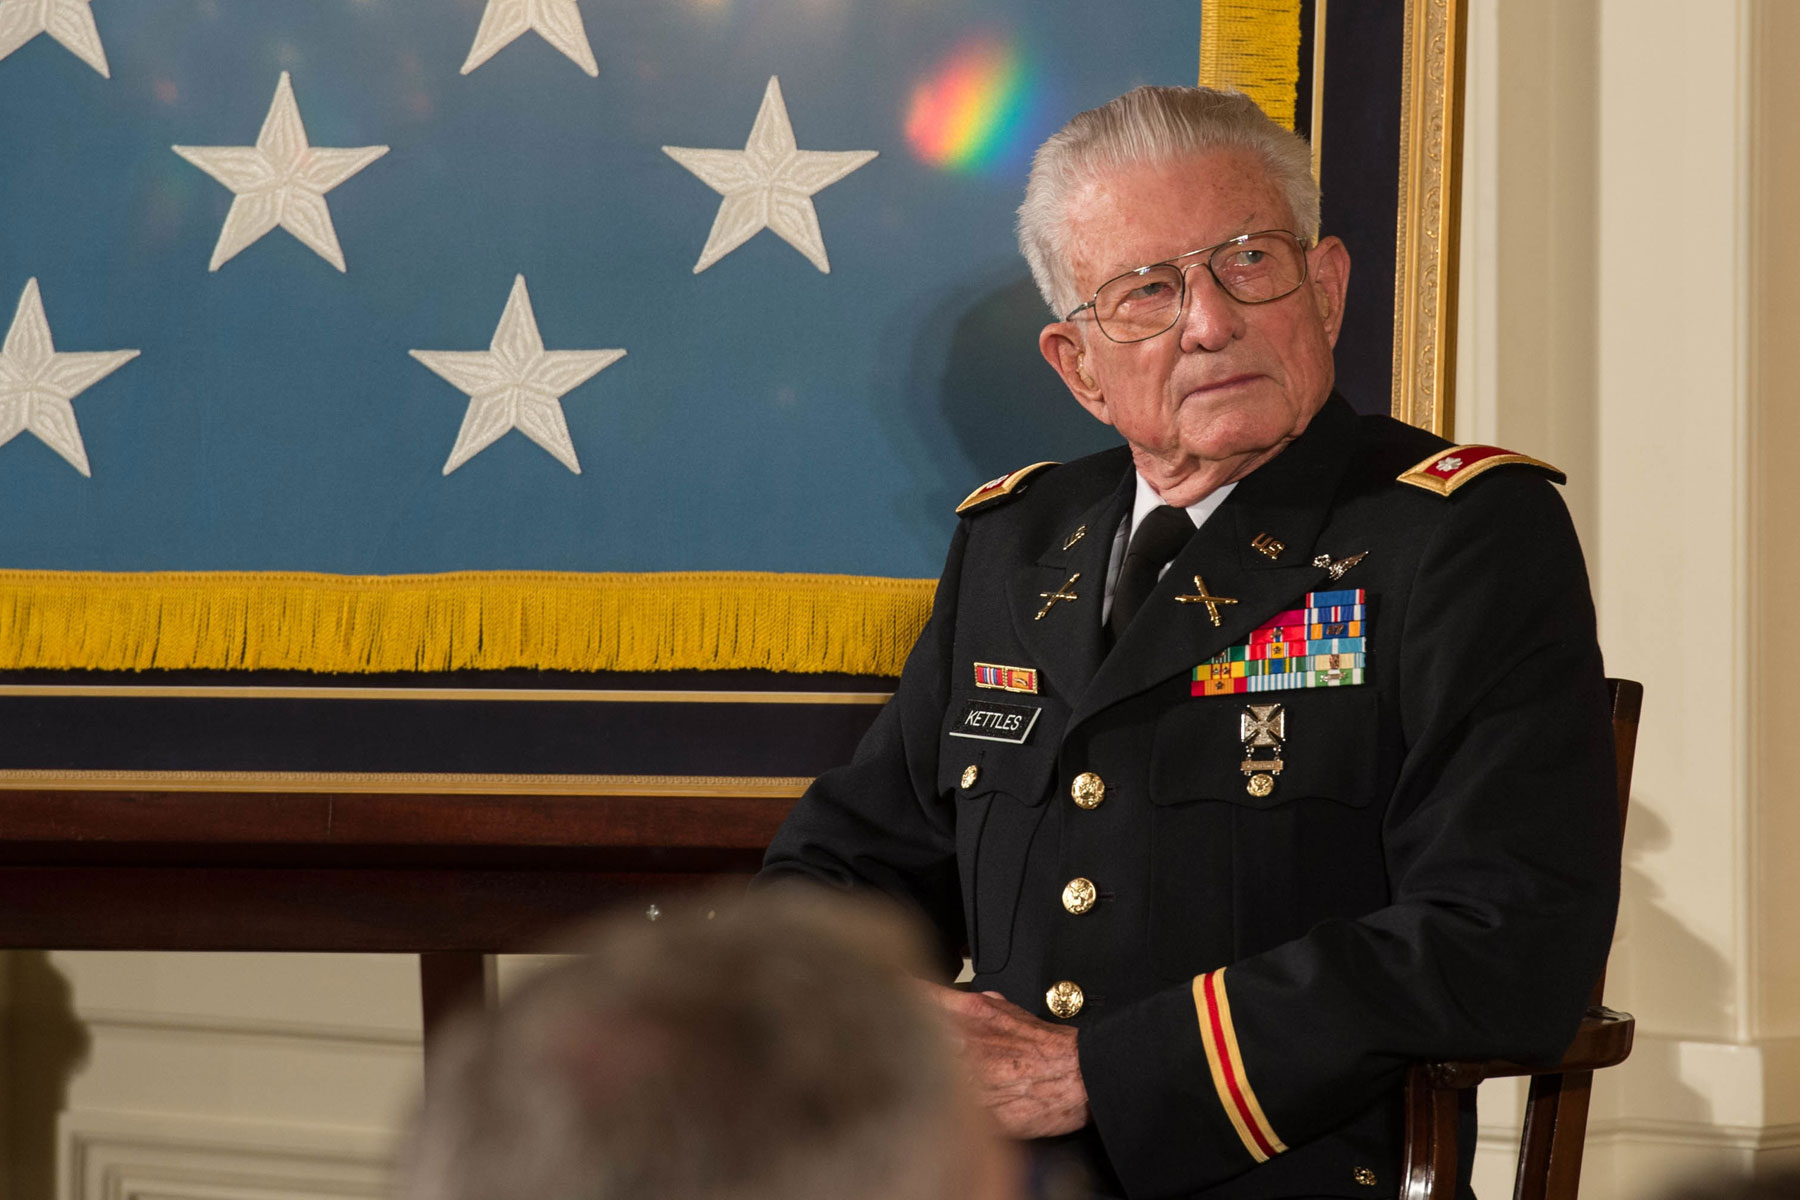 Medal of Honor Recipient Charles Kettles Dies at 89